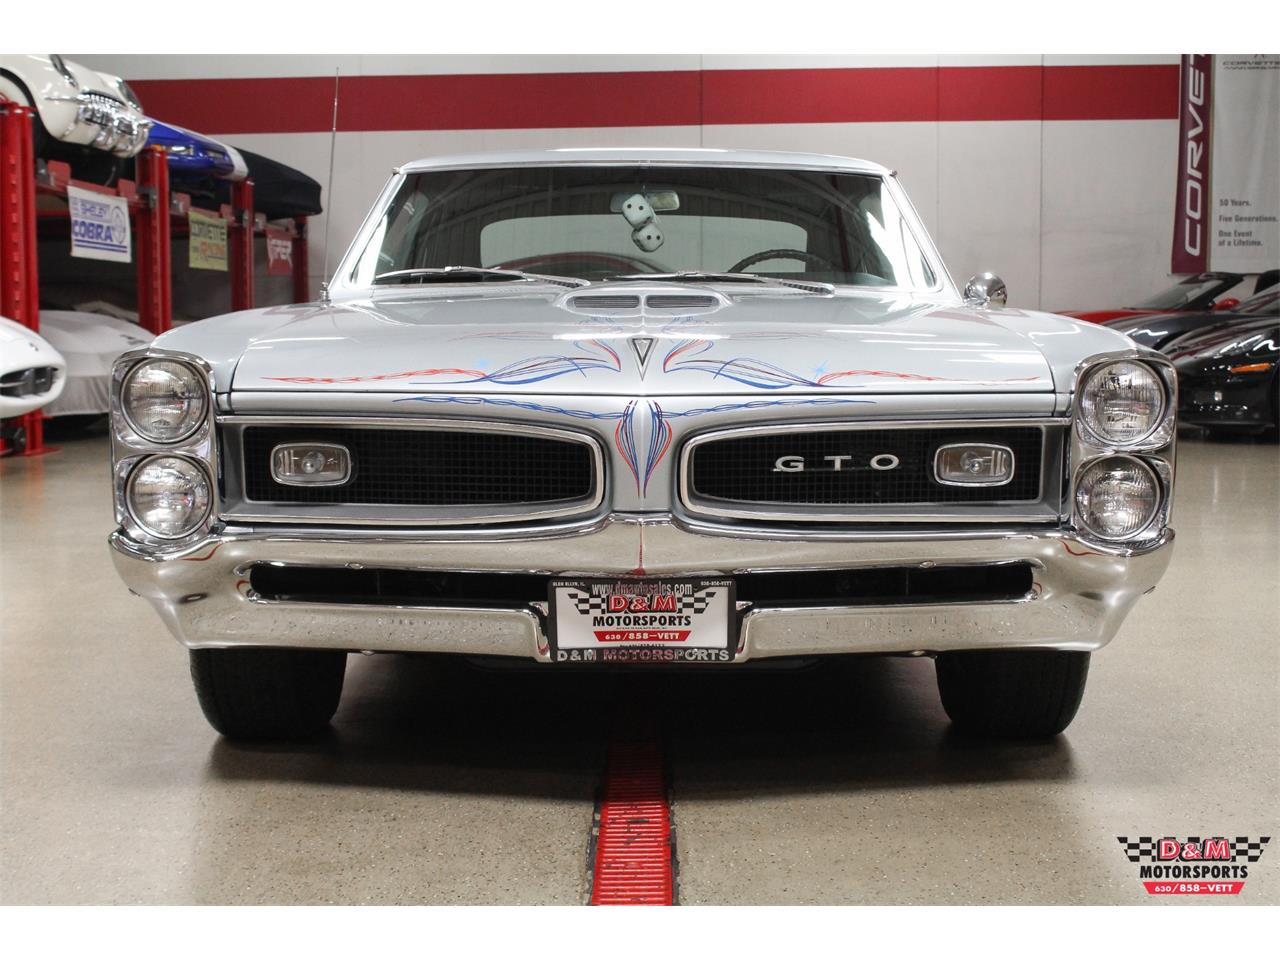 Large Picture of 1966 Pontiac GTO - $39,995.00 Offered by D & M Motorsports - O7FS